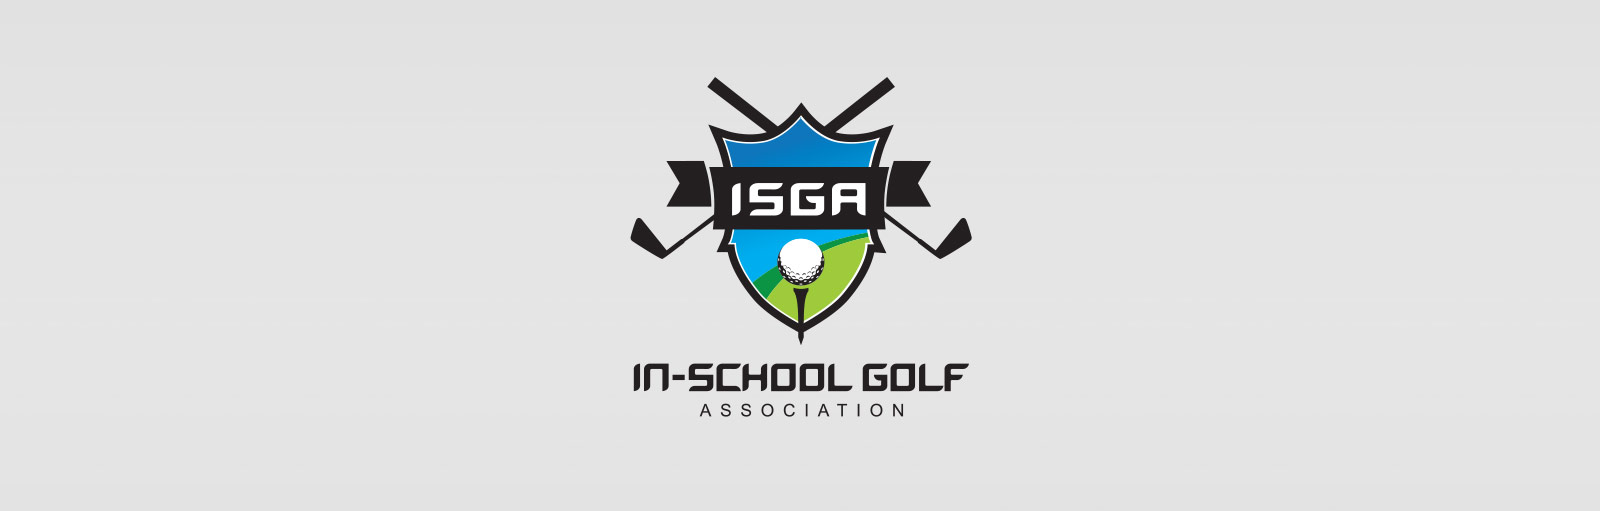 In-School Golf Association